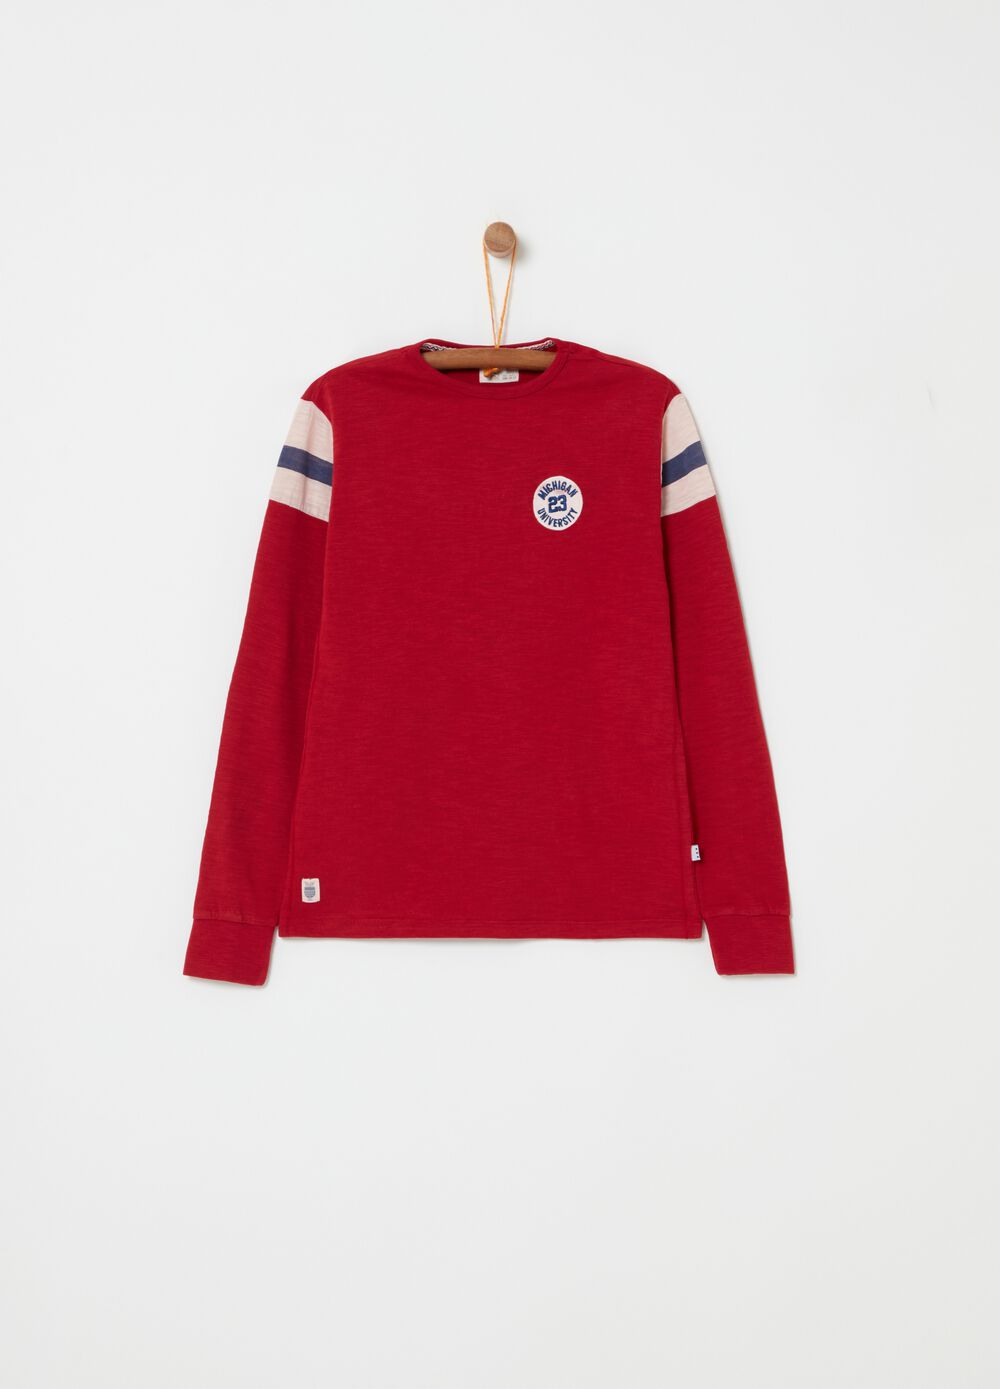 T-shirt in slub jersey with embroidery